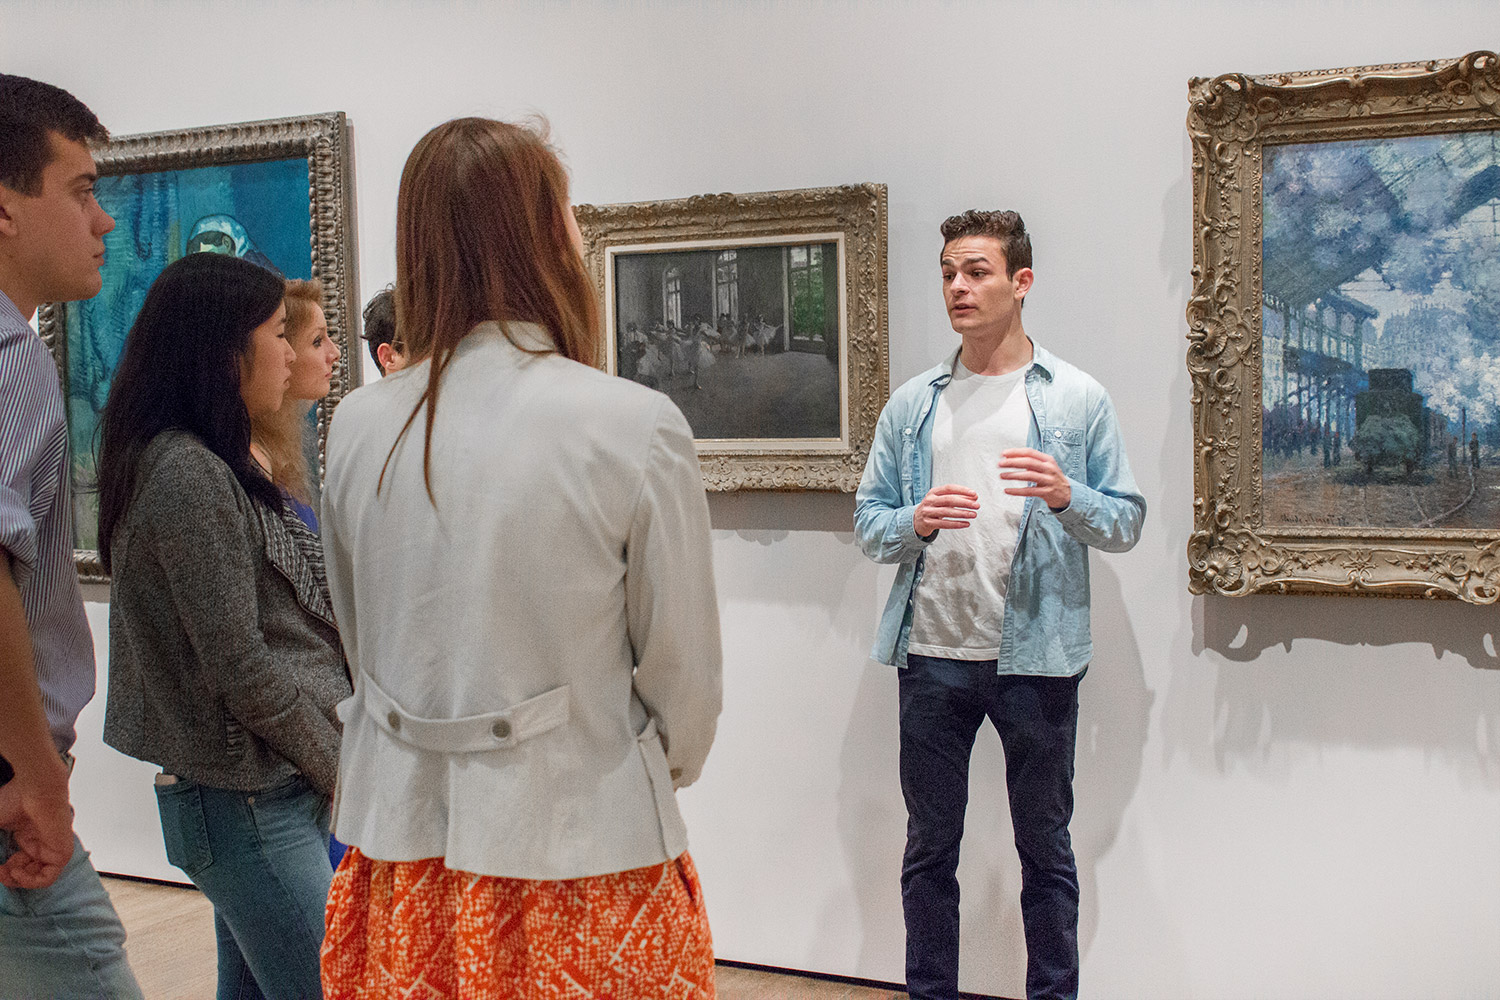 In his tour, student guide Jack Dent discusses Claude Monet's The Gare Saint-Lazare: Arrival of a Train (1877) and the artist's shift from painting rural landscapes to industrial scenes.